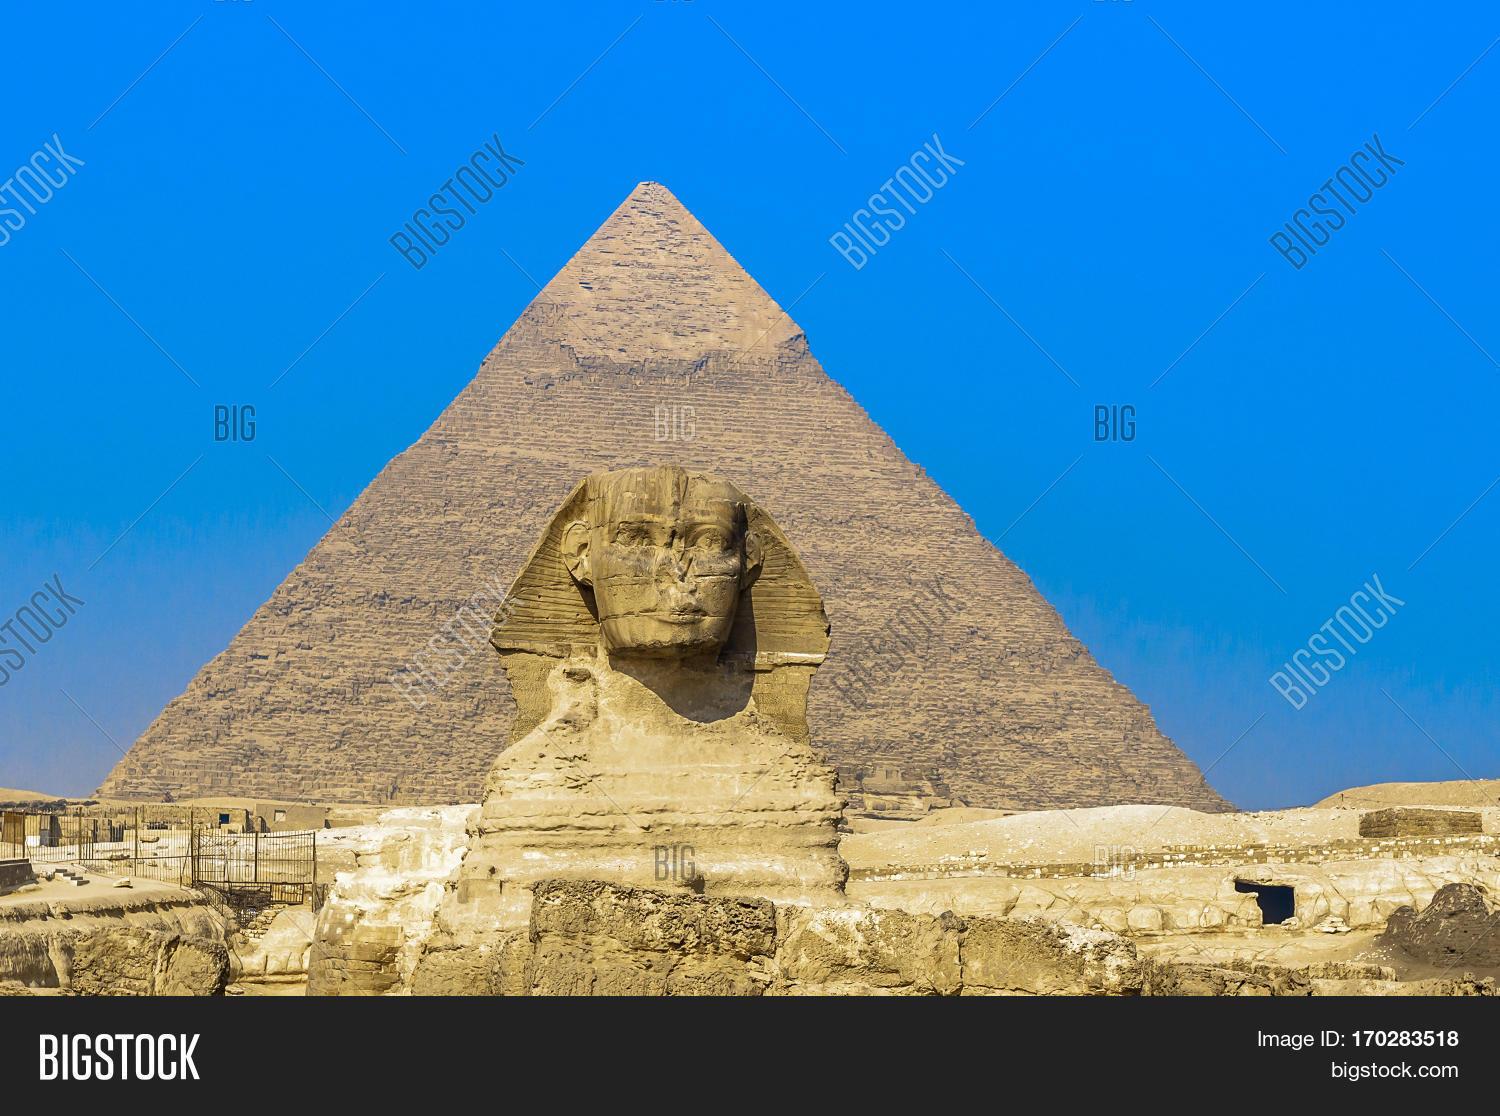 Sphinx Pyramids Giza Image & Photo (Free Trial) | Bigstock